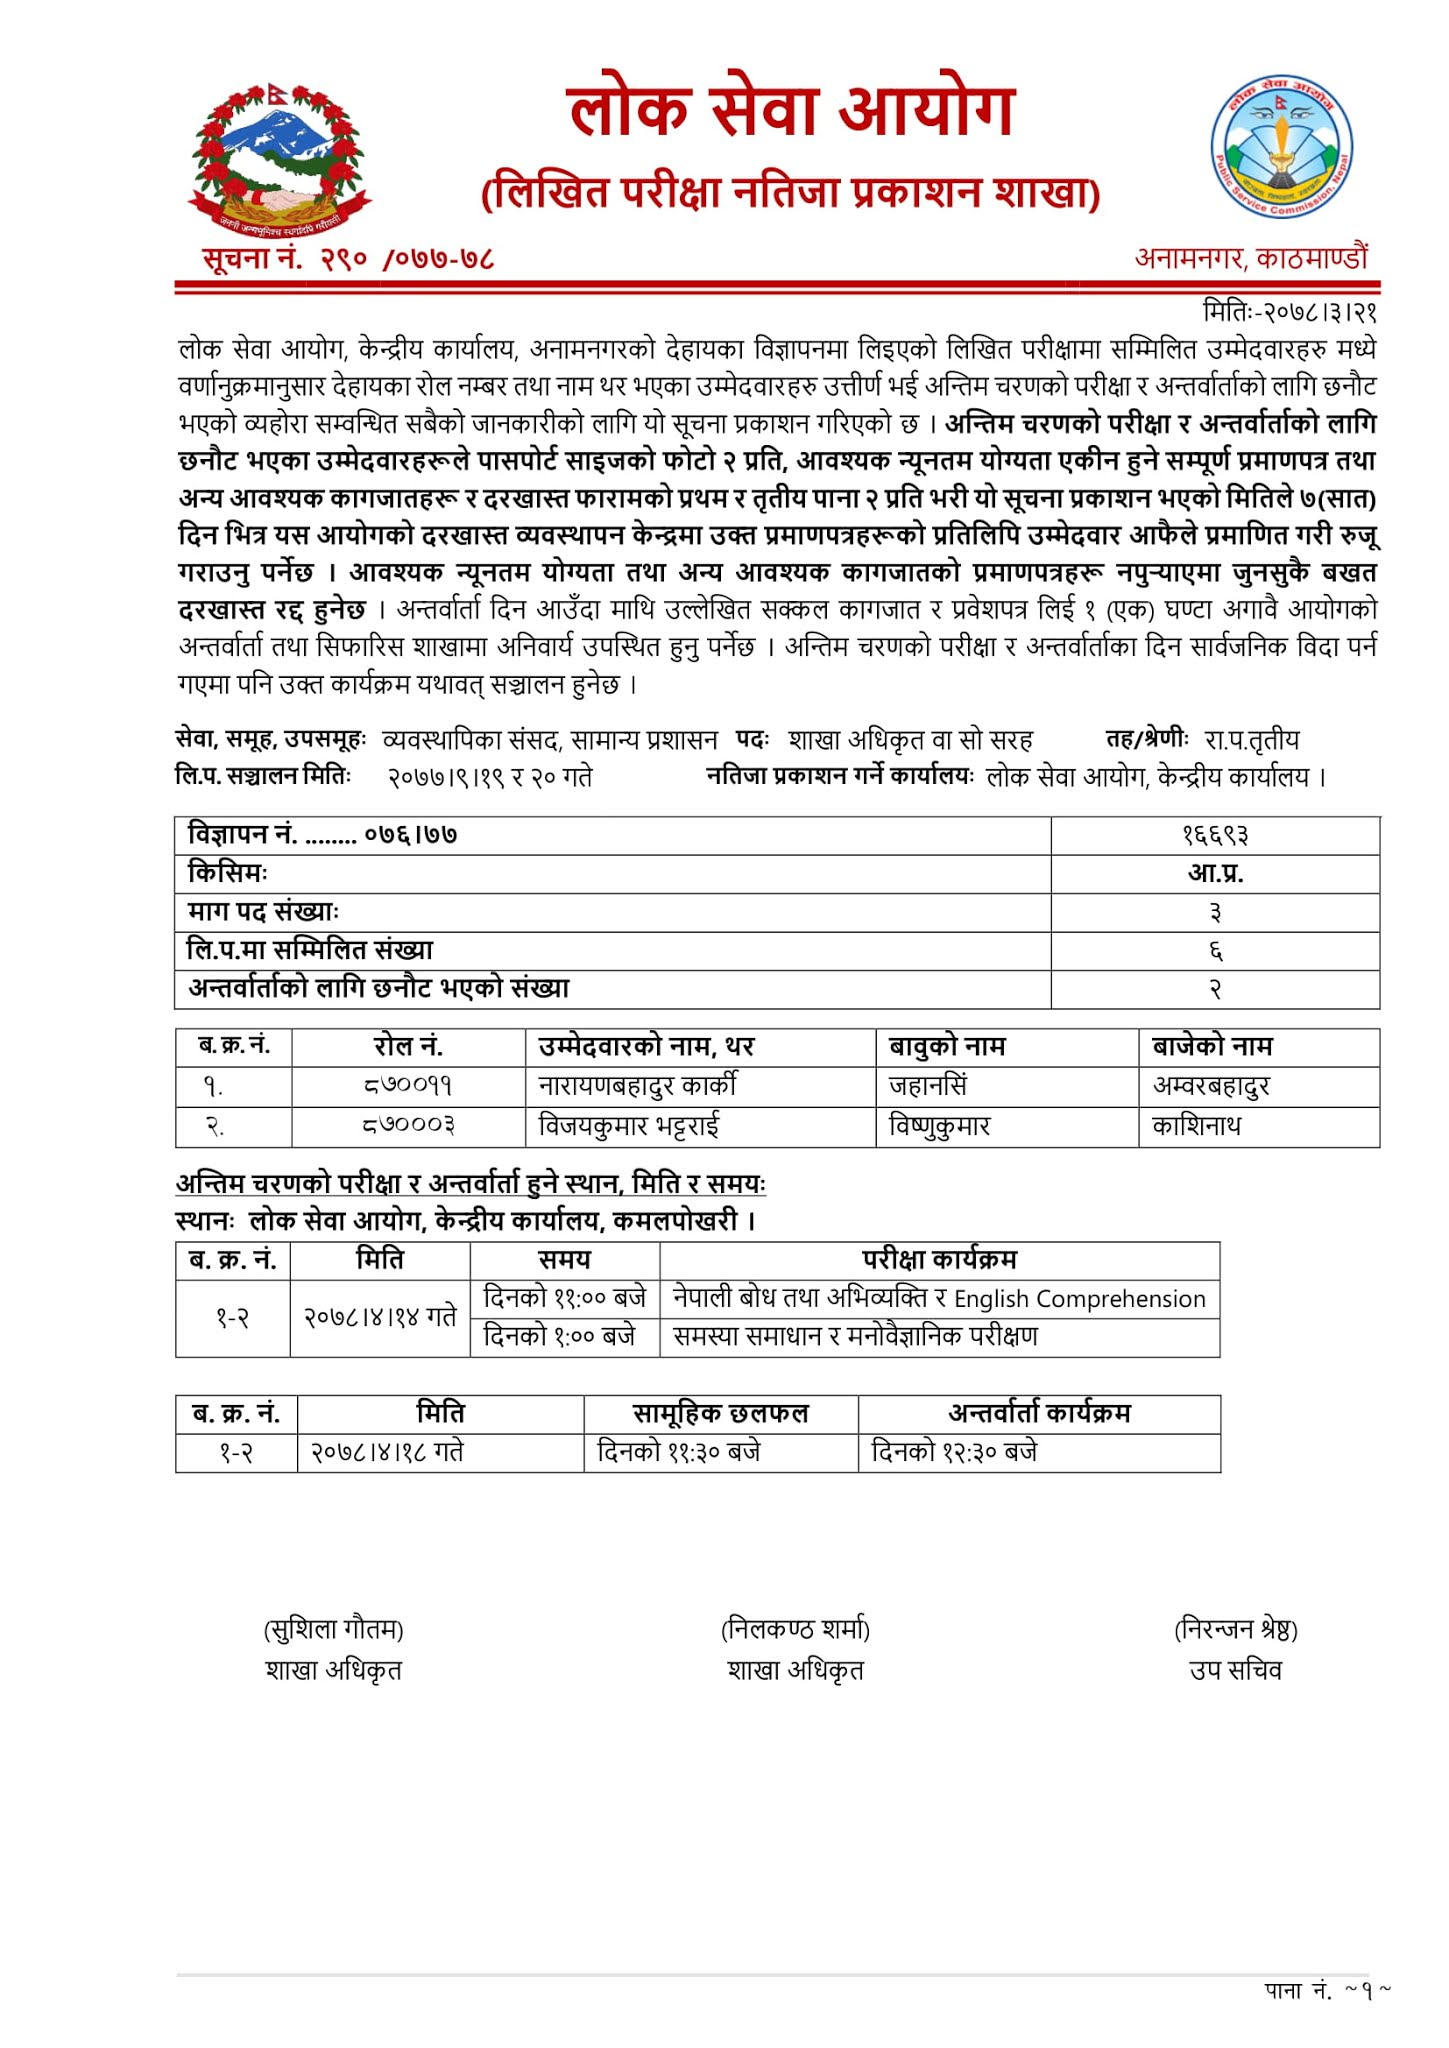 Exam Result of Section Officer: Parliament of Management, General Administration: